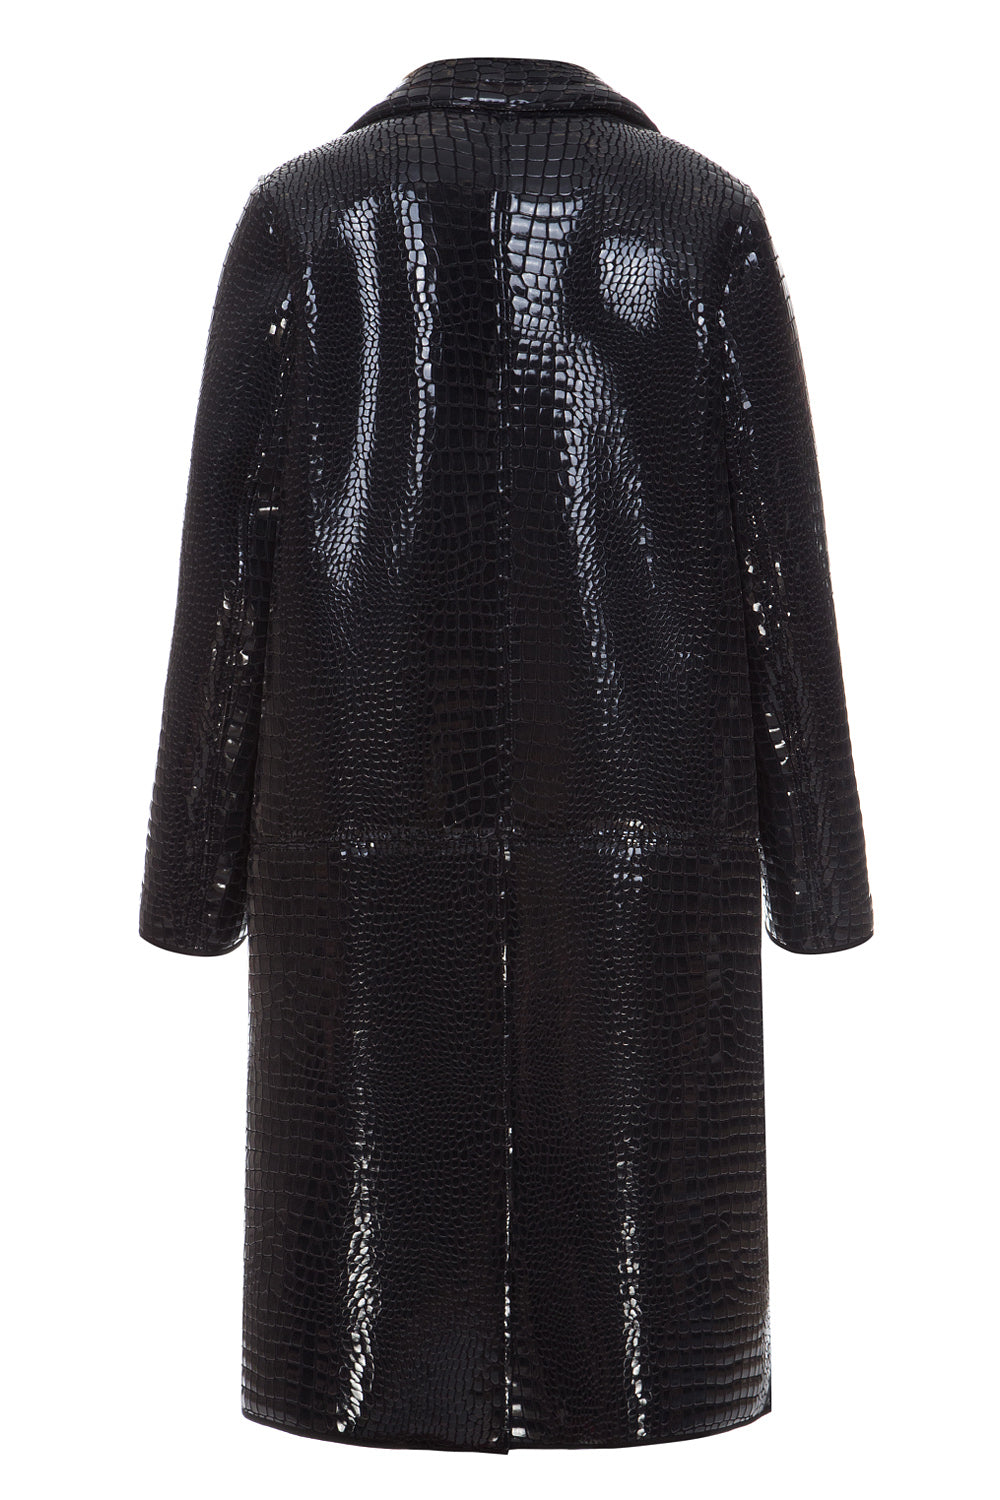 Neoprene Croceffect Coat